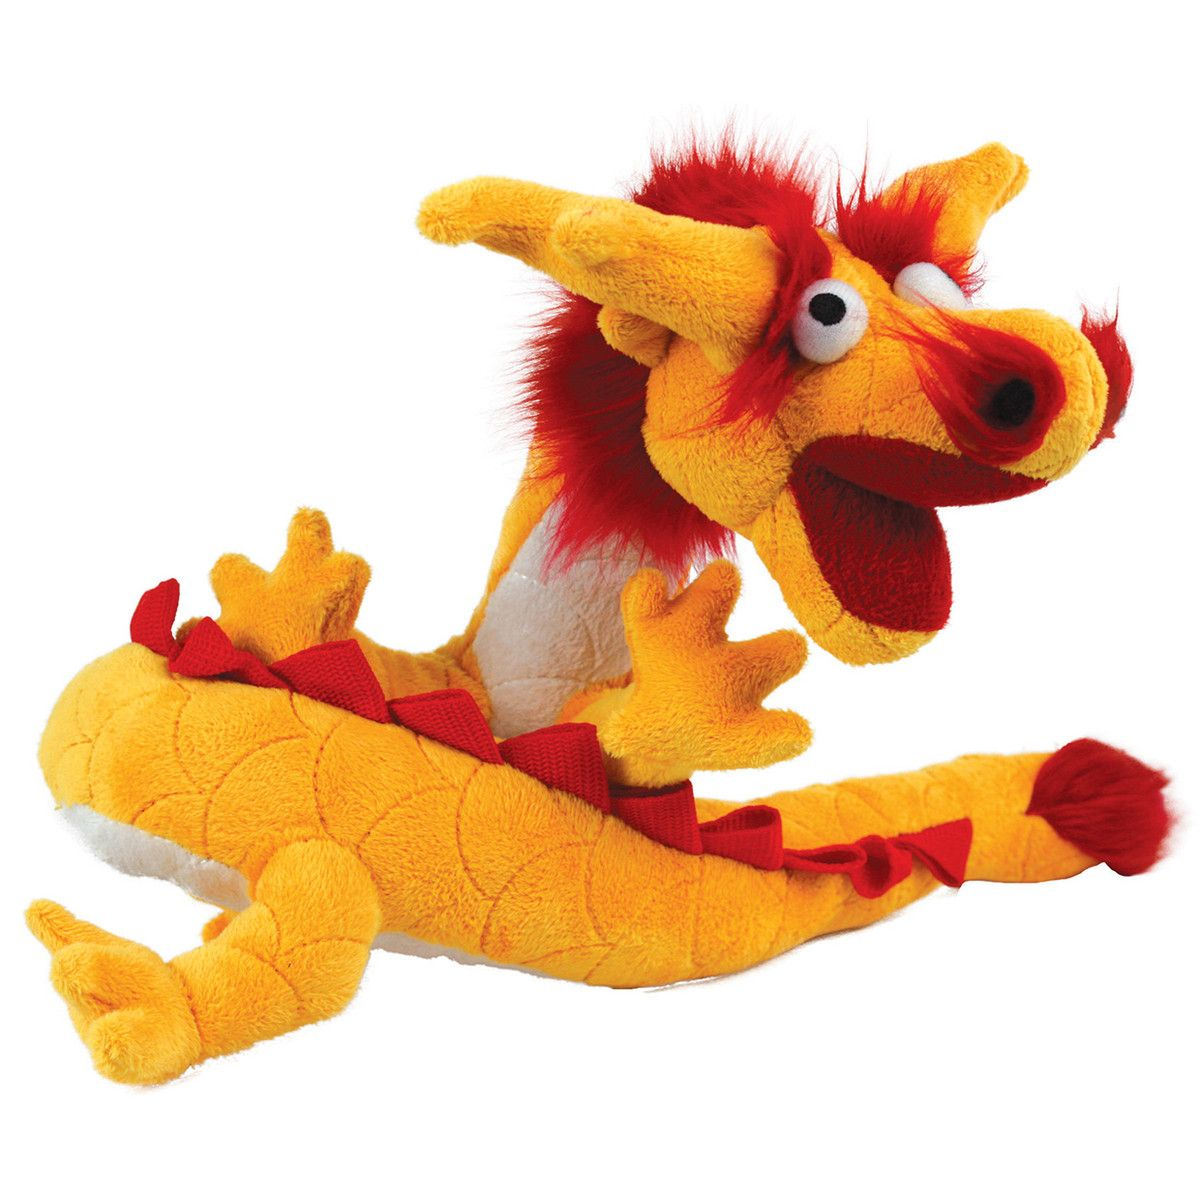 Mighty Toy Yellow Dragon By Mighty Dog Toys Vip Products Dragon Toys Dog Toys